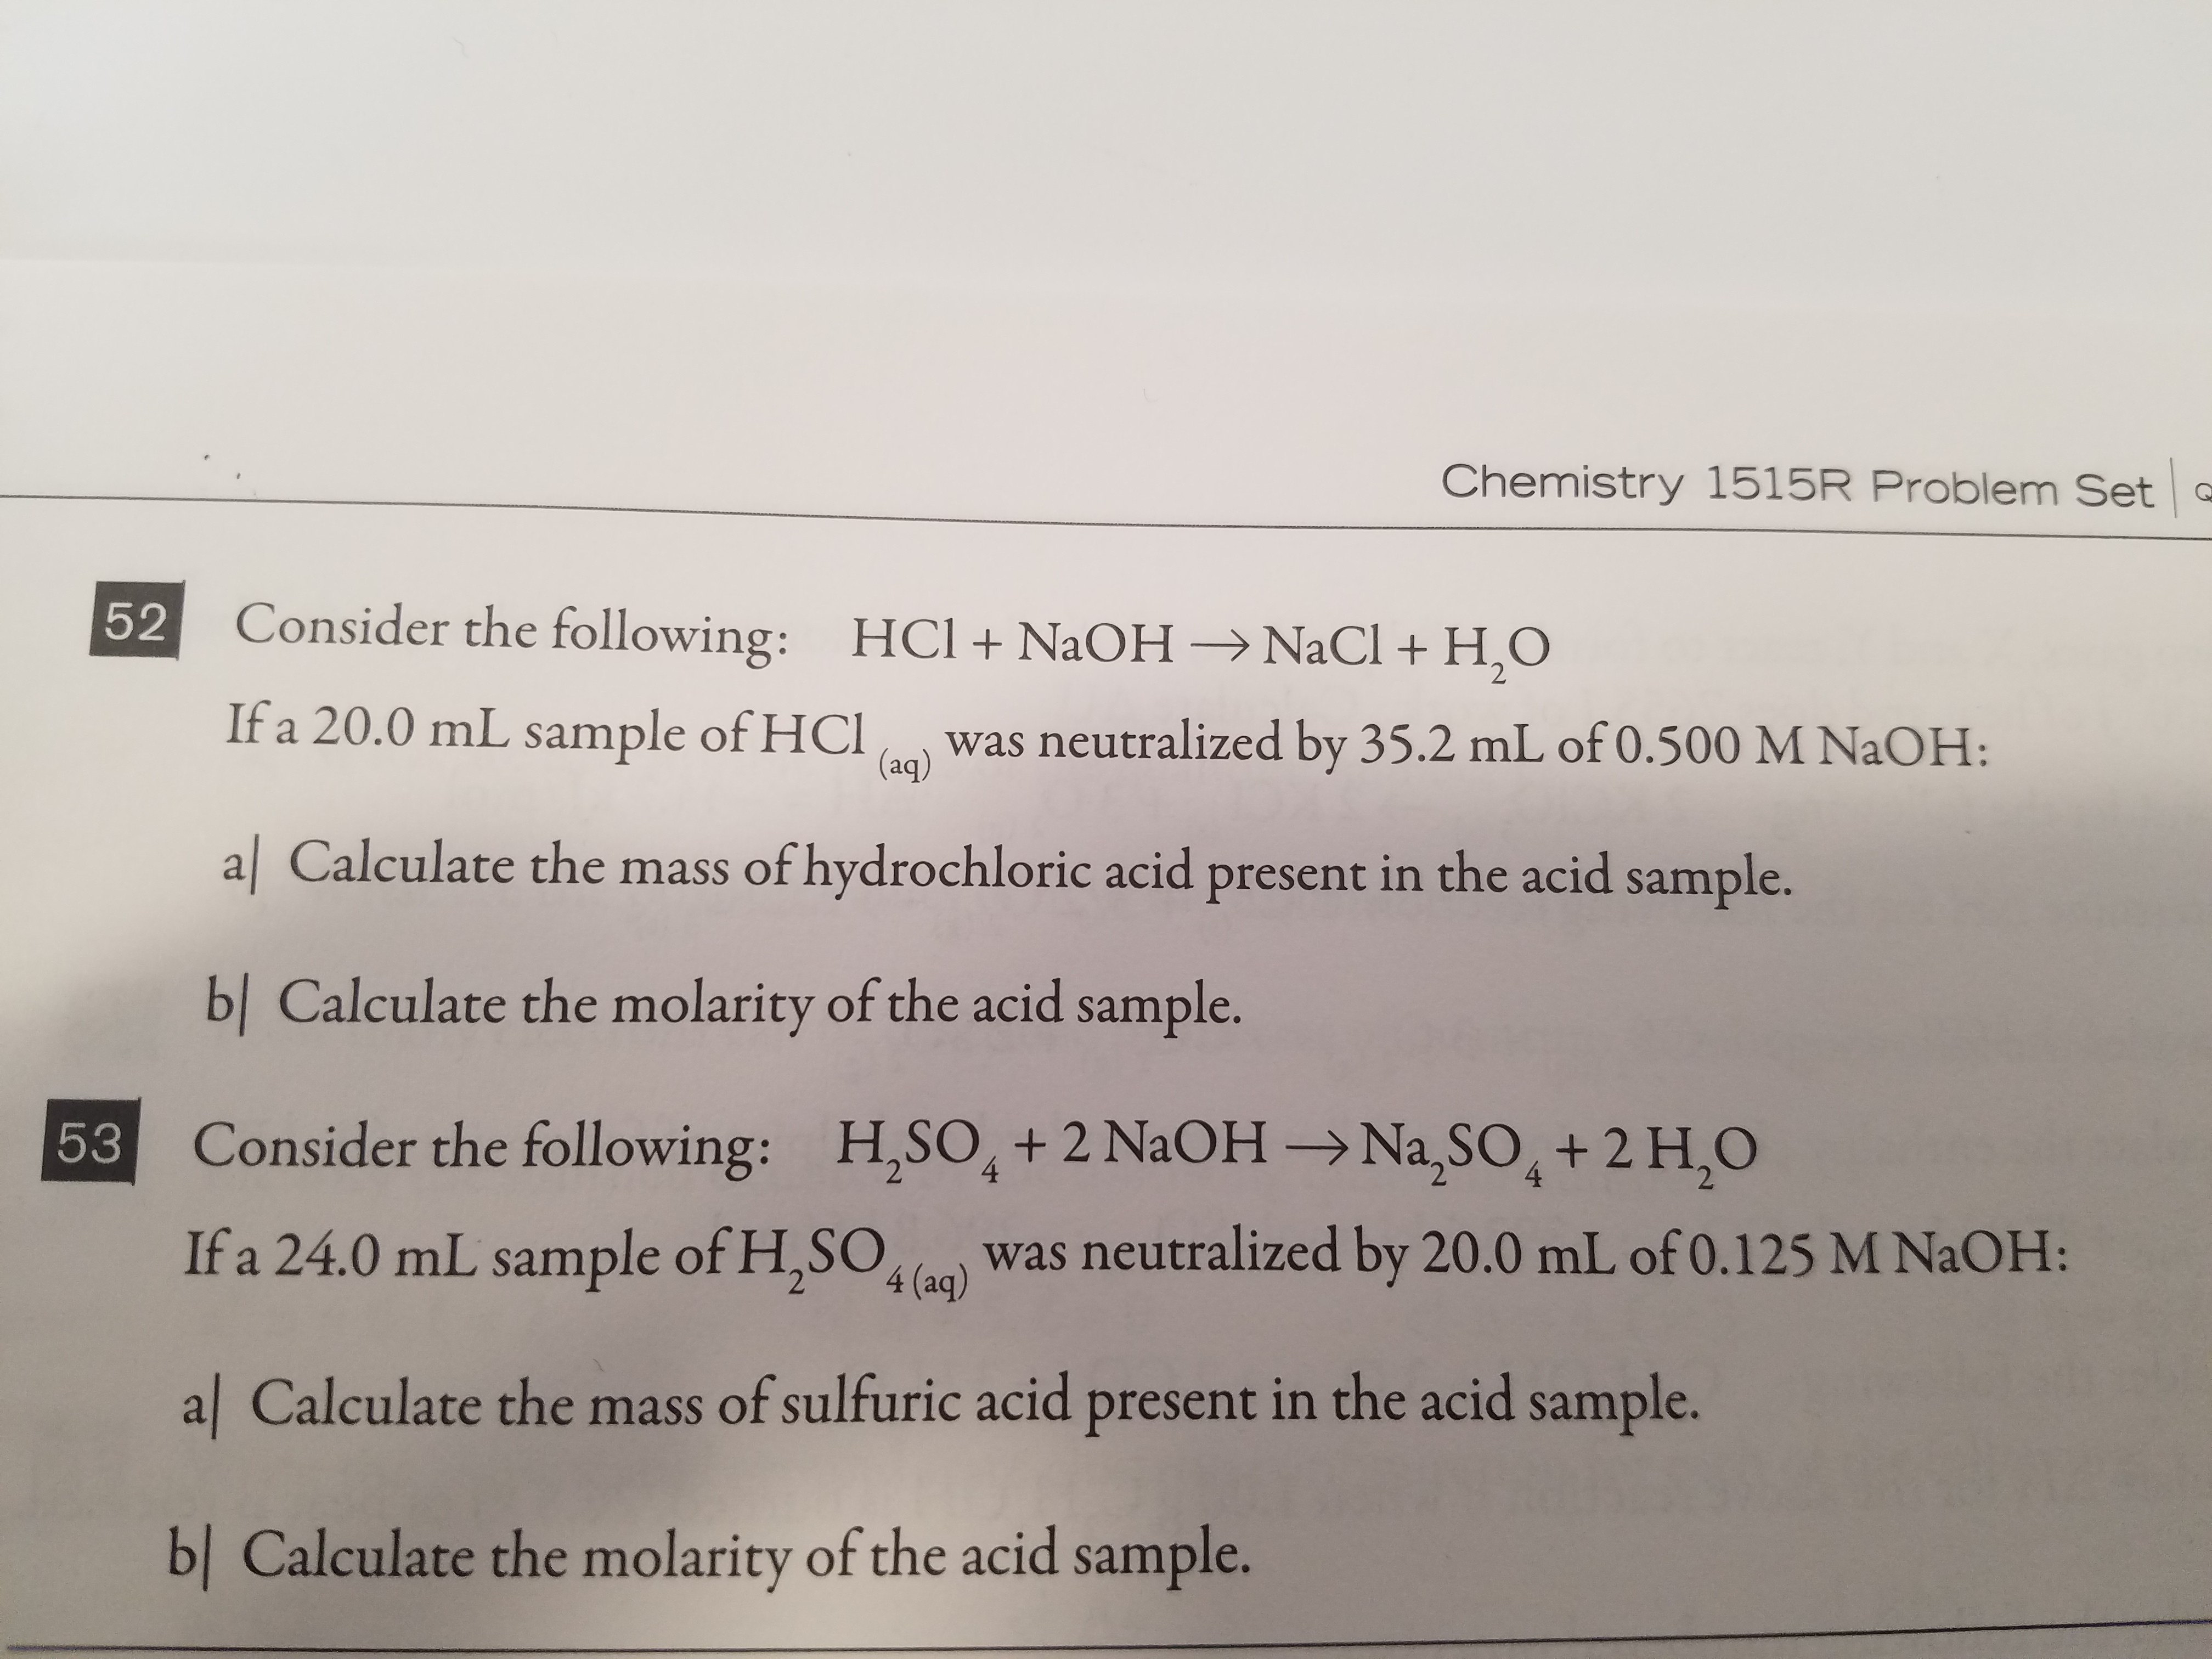 Chemistry 1515R Problem Set Consider the following: HCl + NaOH → NaCl + H2O If a 20.0 mL sap H was neutralized by 35.2 mL of 0.500 M NaOH: al Calculate the mass of hydrochloric acid present in the acid sample. bl Calculate the molarity of the acid sample. Consider the following: If a 24.0 mL sample of H.SOlo) was neutralized by 20.0 mL of 0.125 M NaOH: al Calculate the mass of sulfuric acid present in the acid sample. 52 (aq) ES H,so, + 2 NaOH → Na2SO4 + 2 H,O 53 bl Calculate the molarity of the acid sample.